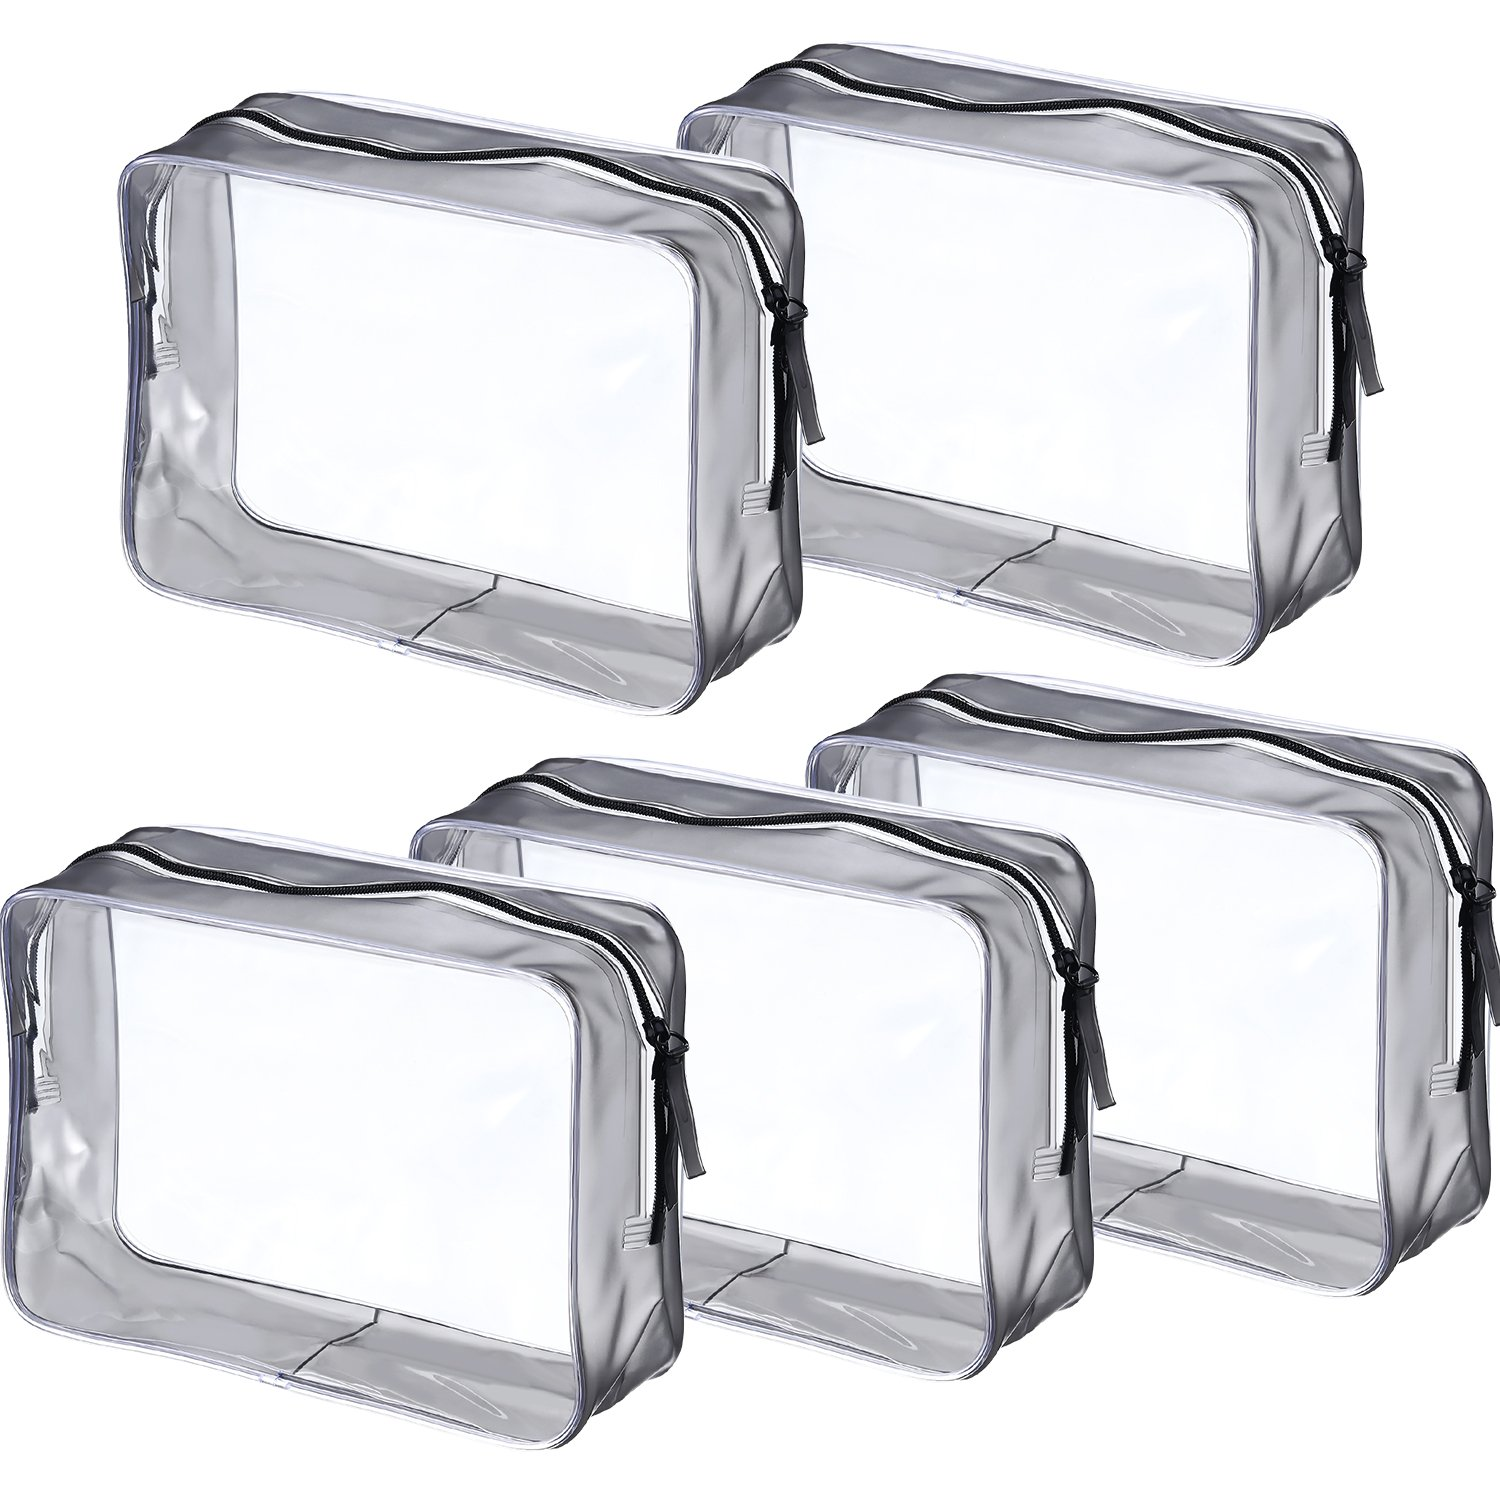 Pangda 5 Pack Clear PVC Zippered Toiletry Carry Pouch Portable Cosmetic Makeup Bag for Vacation, Bathroom and Organizing (Small, Transparent)